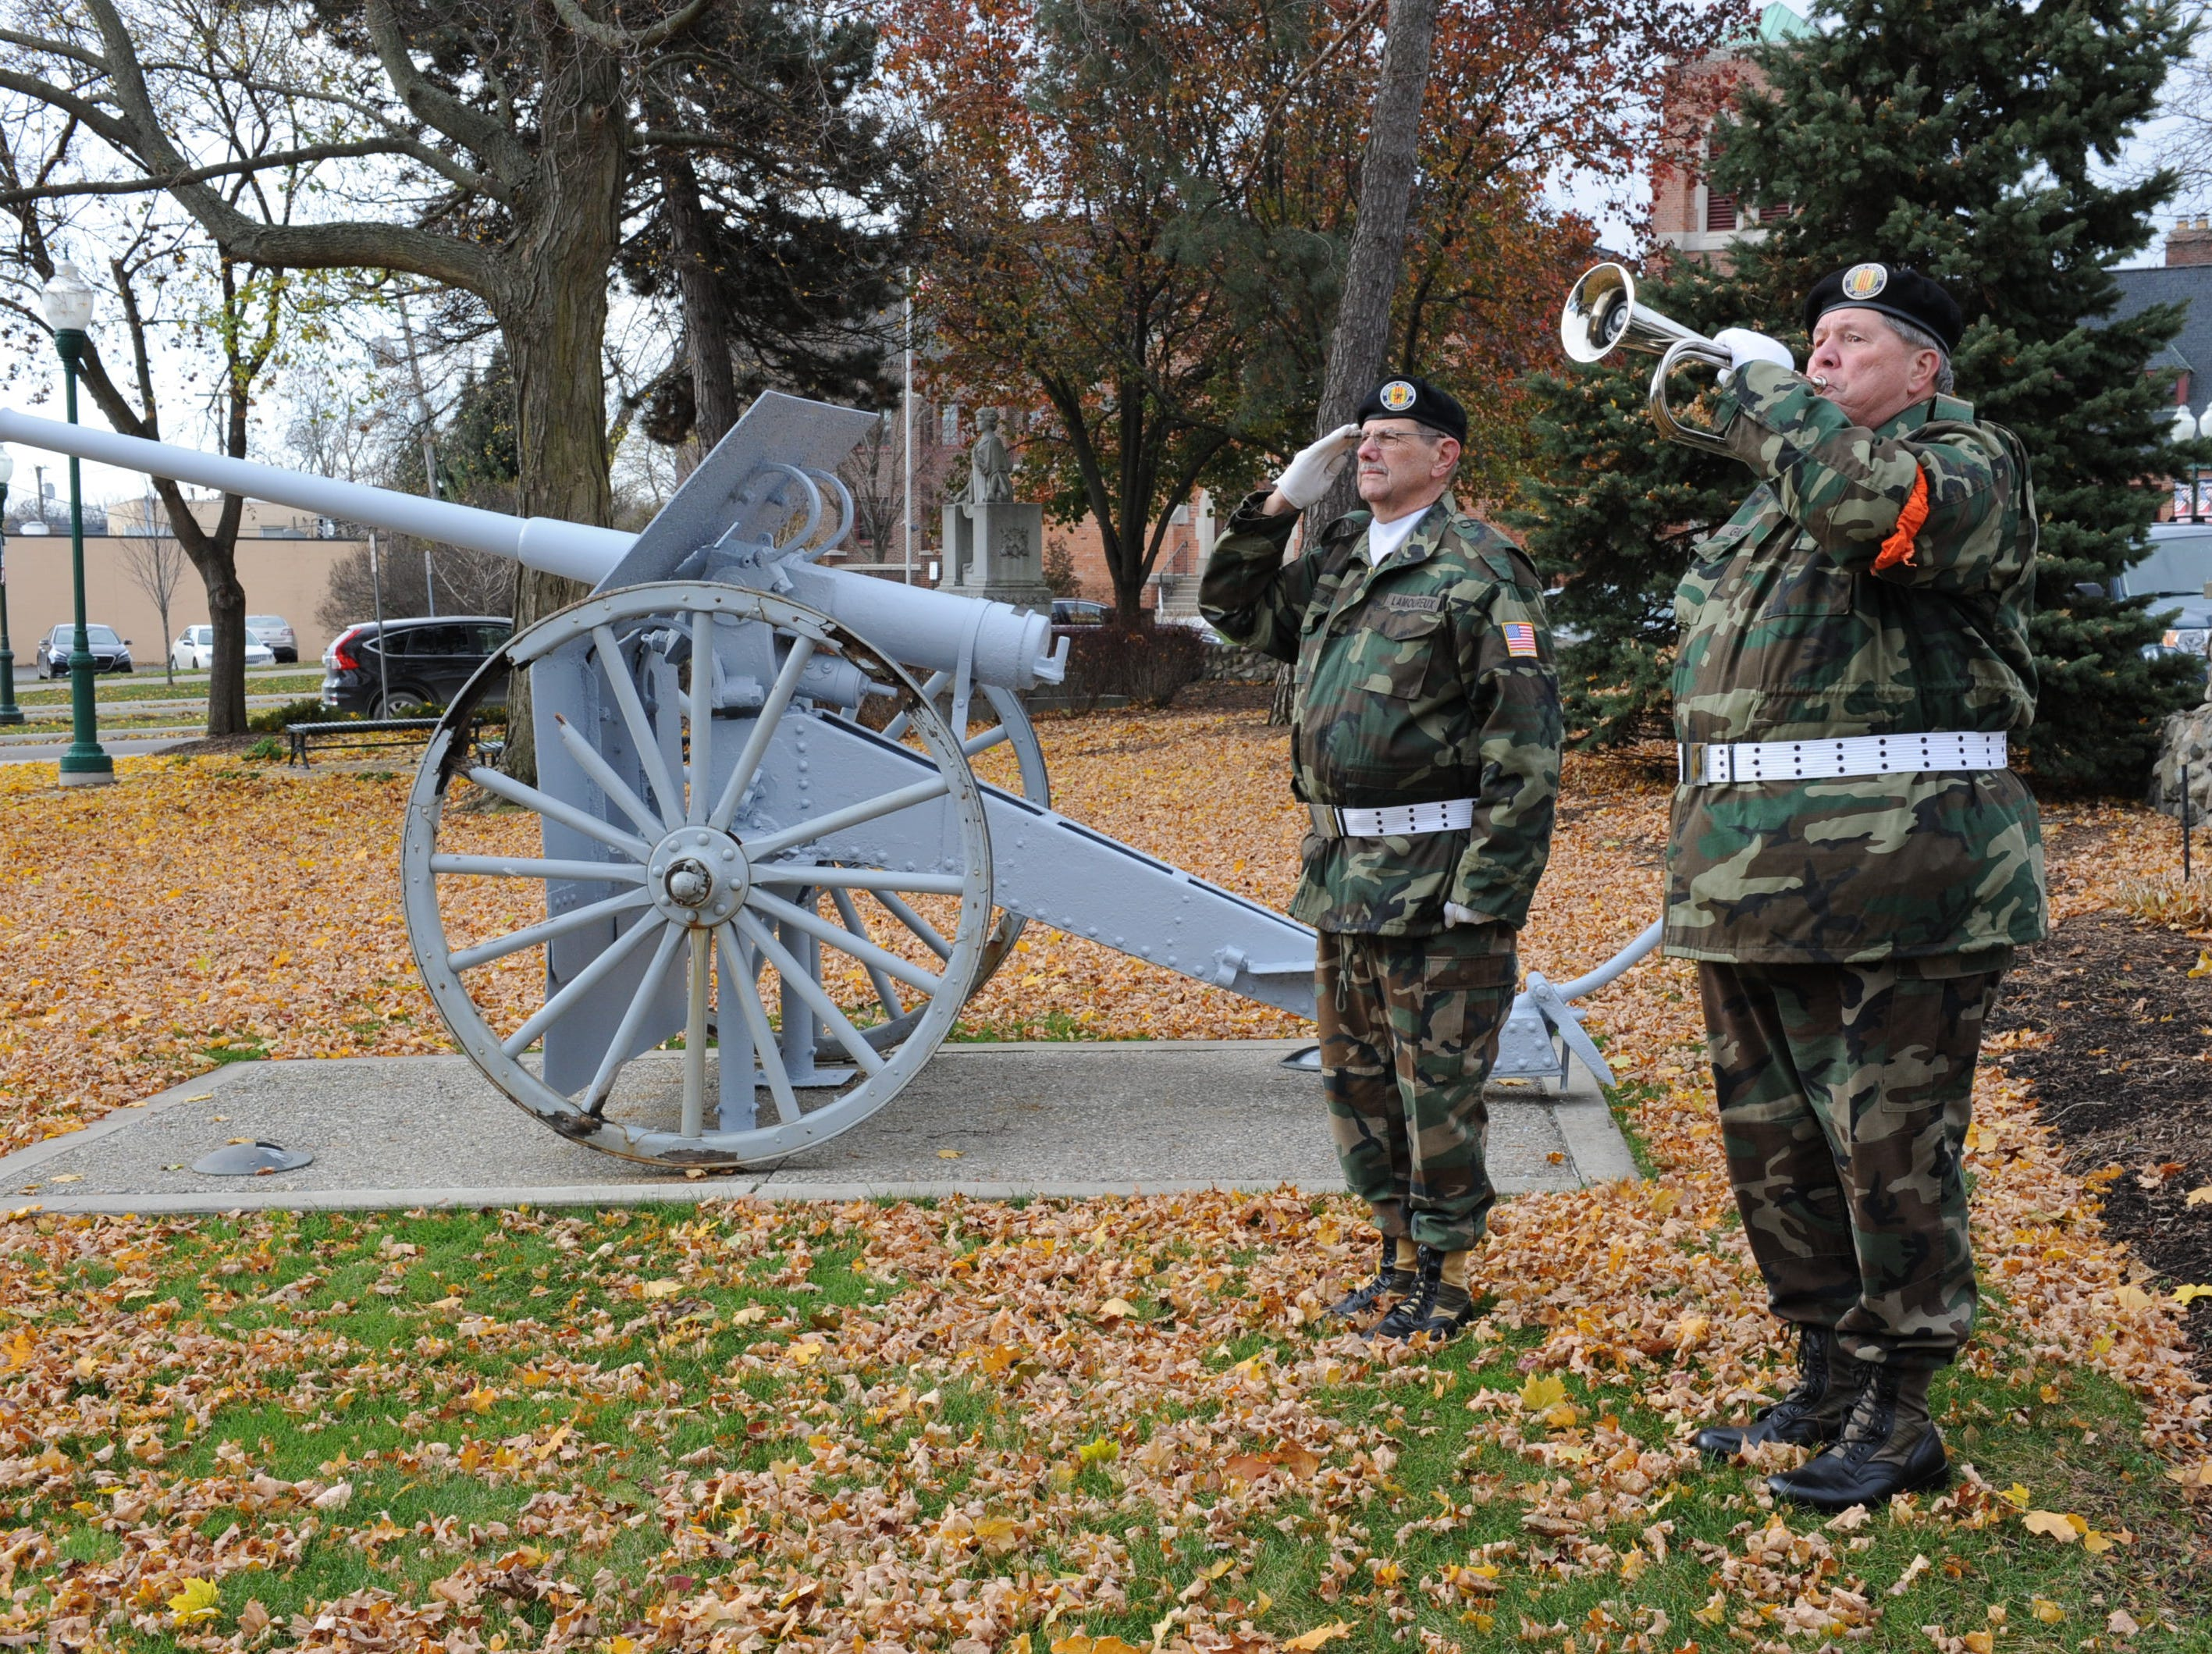 Plymouth ceremony honors veterans